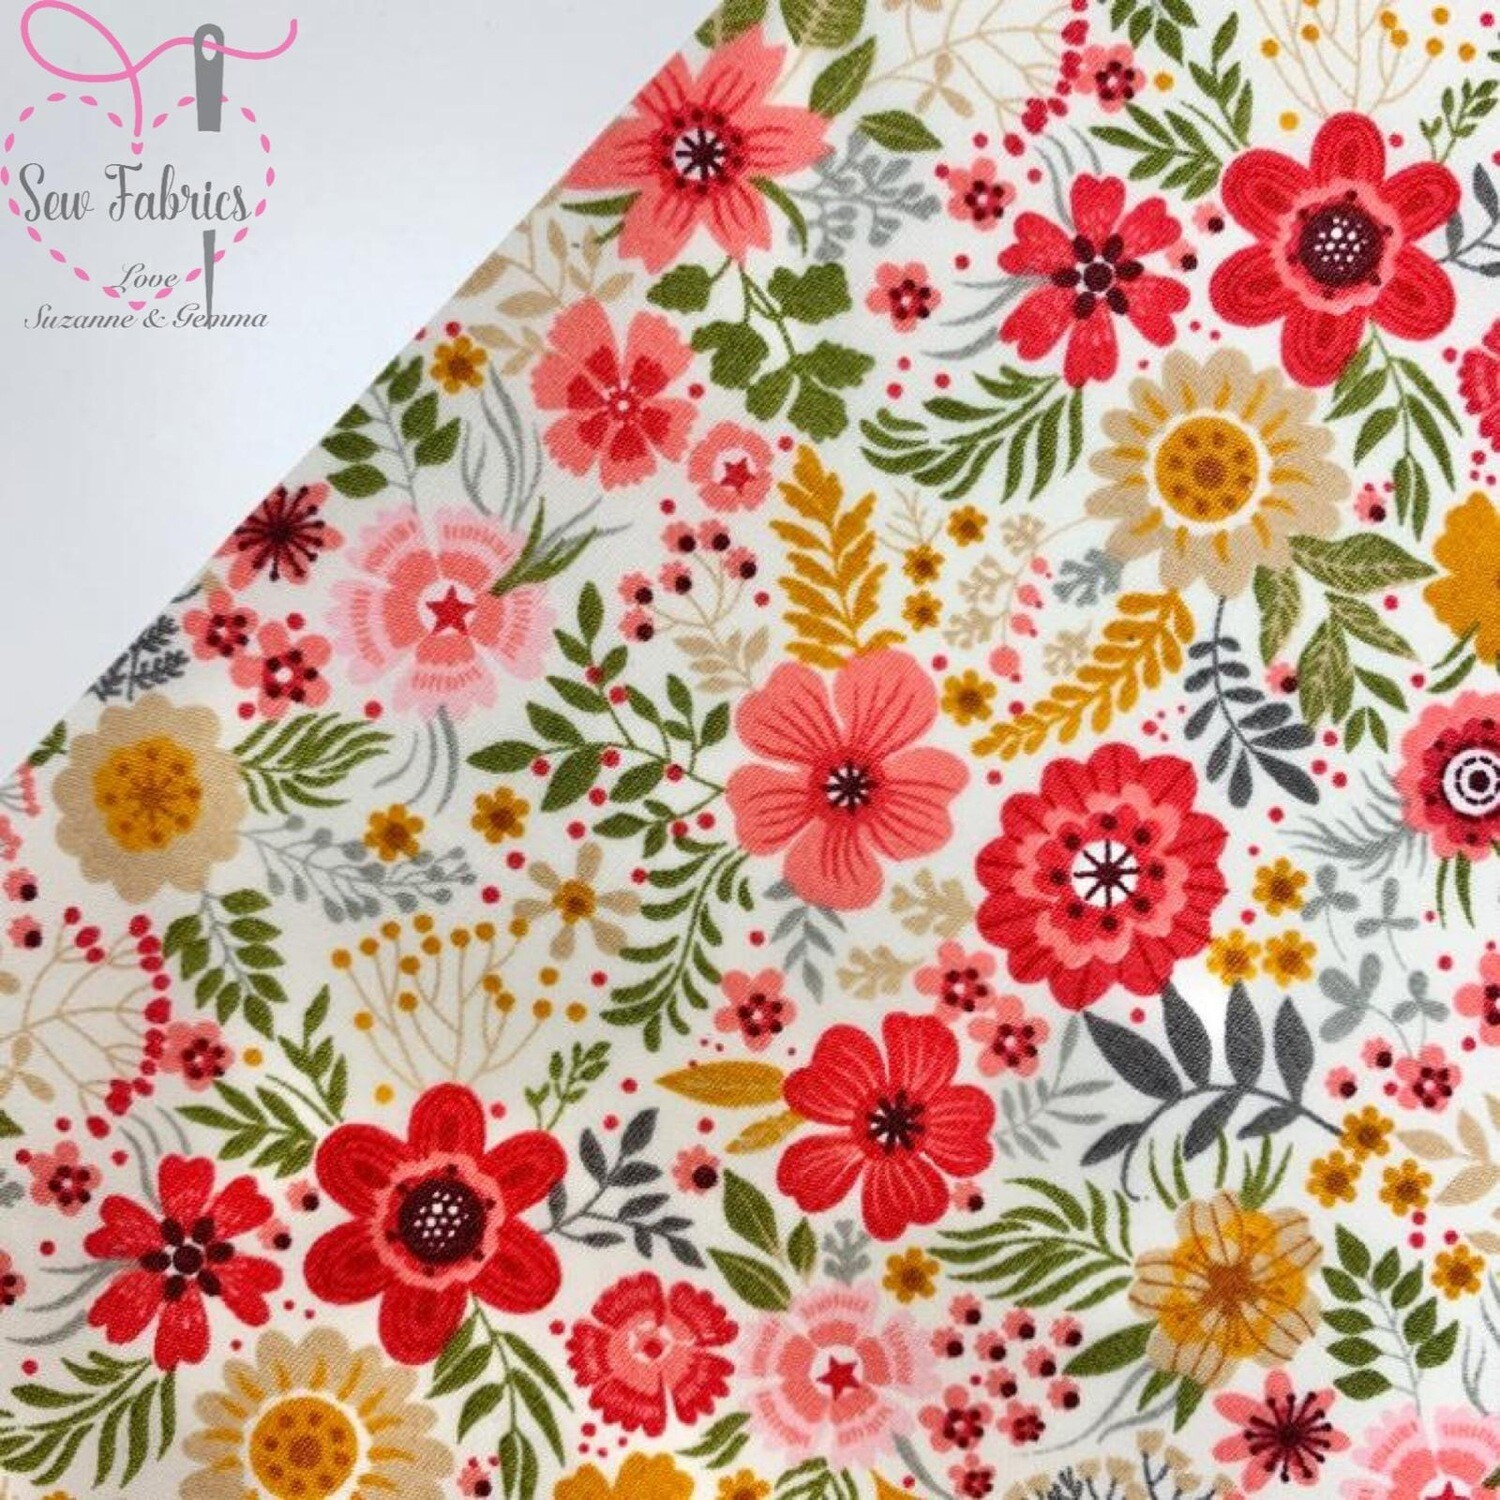 Rose & Hubble Pretty Petals Floral Print 100% Cotton Poplin Fabric